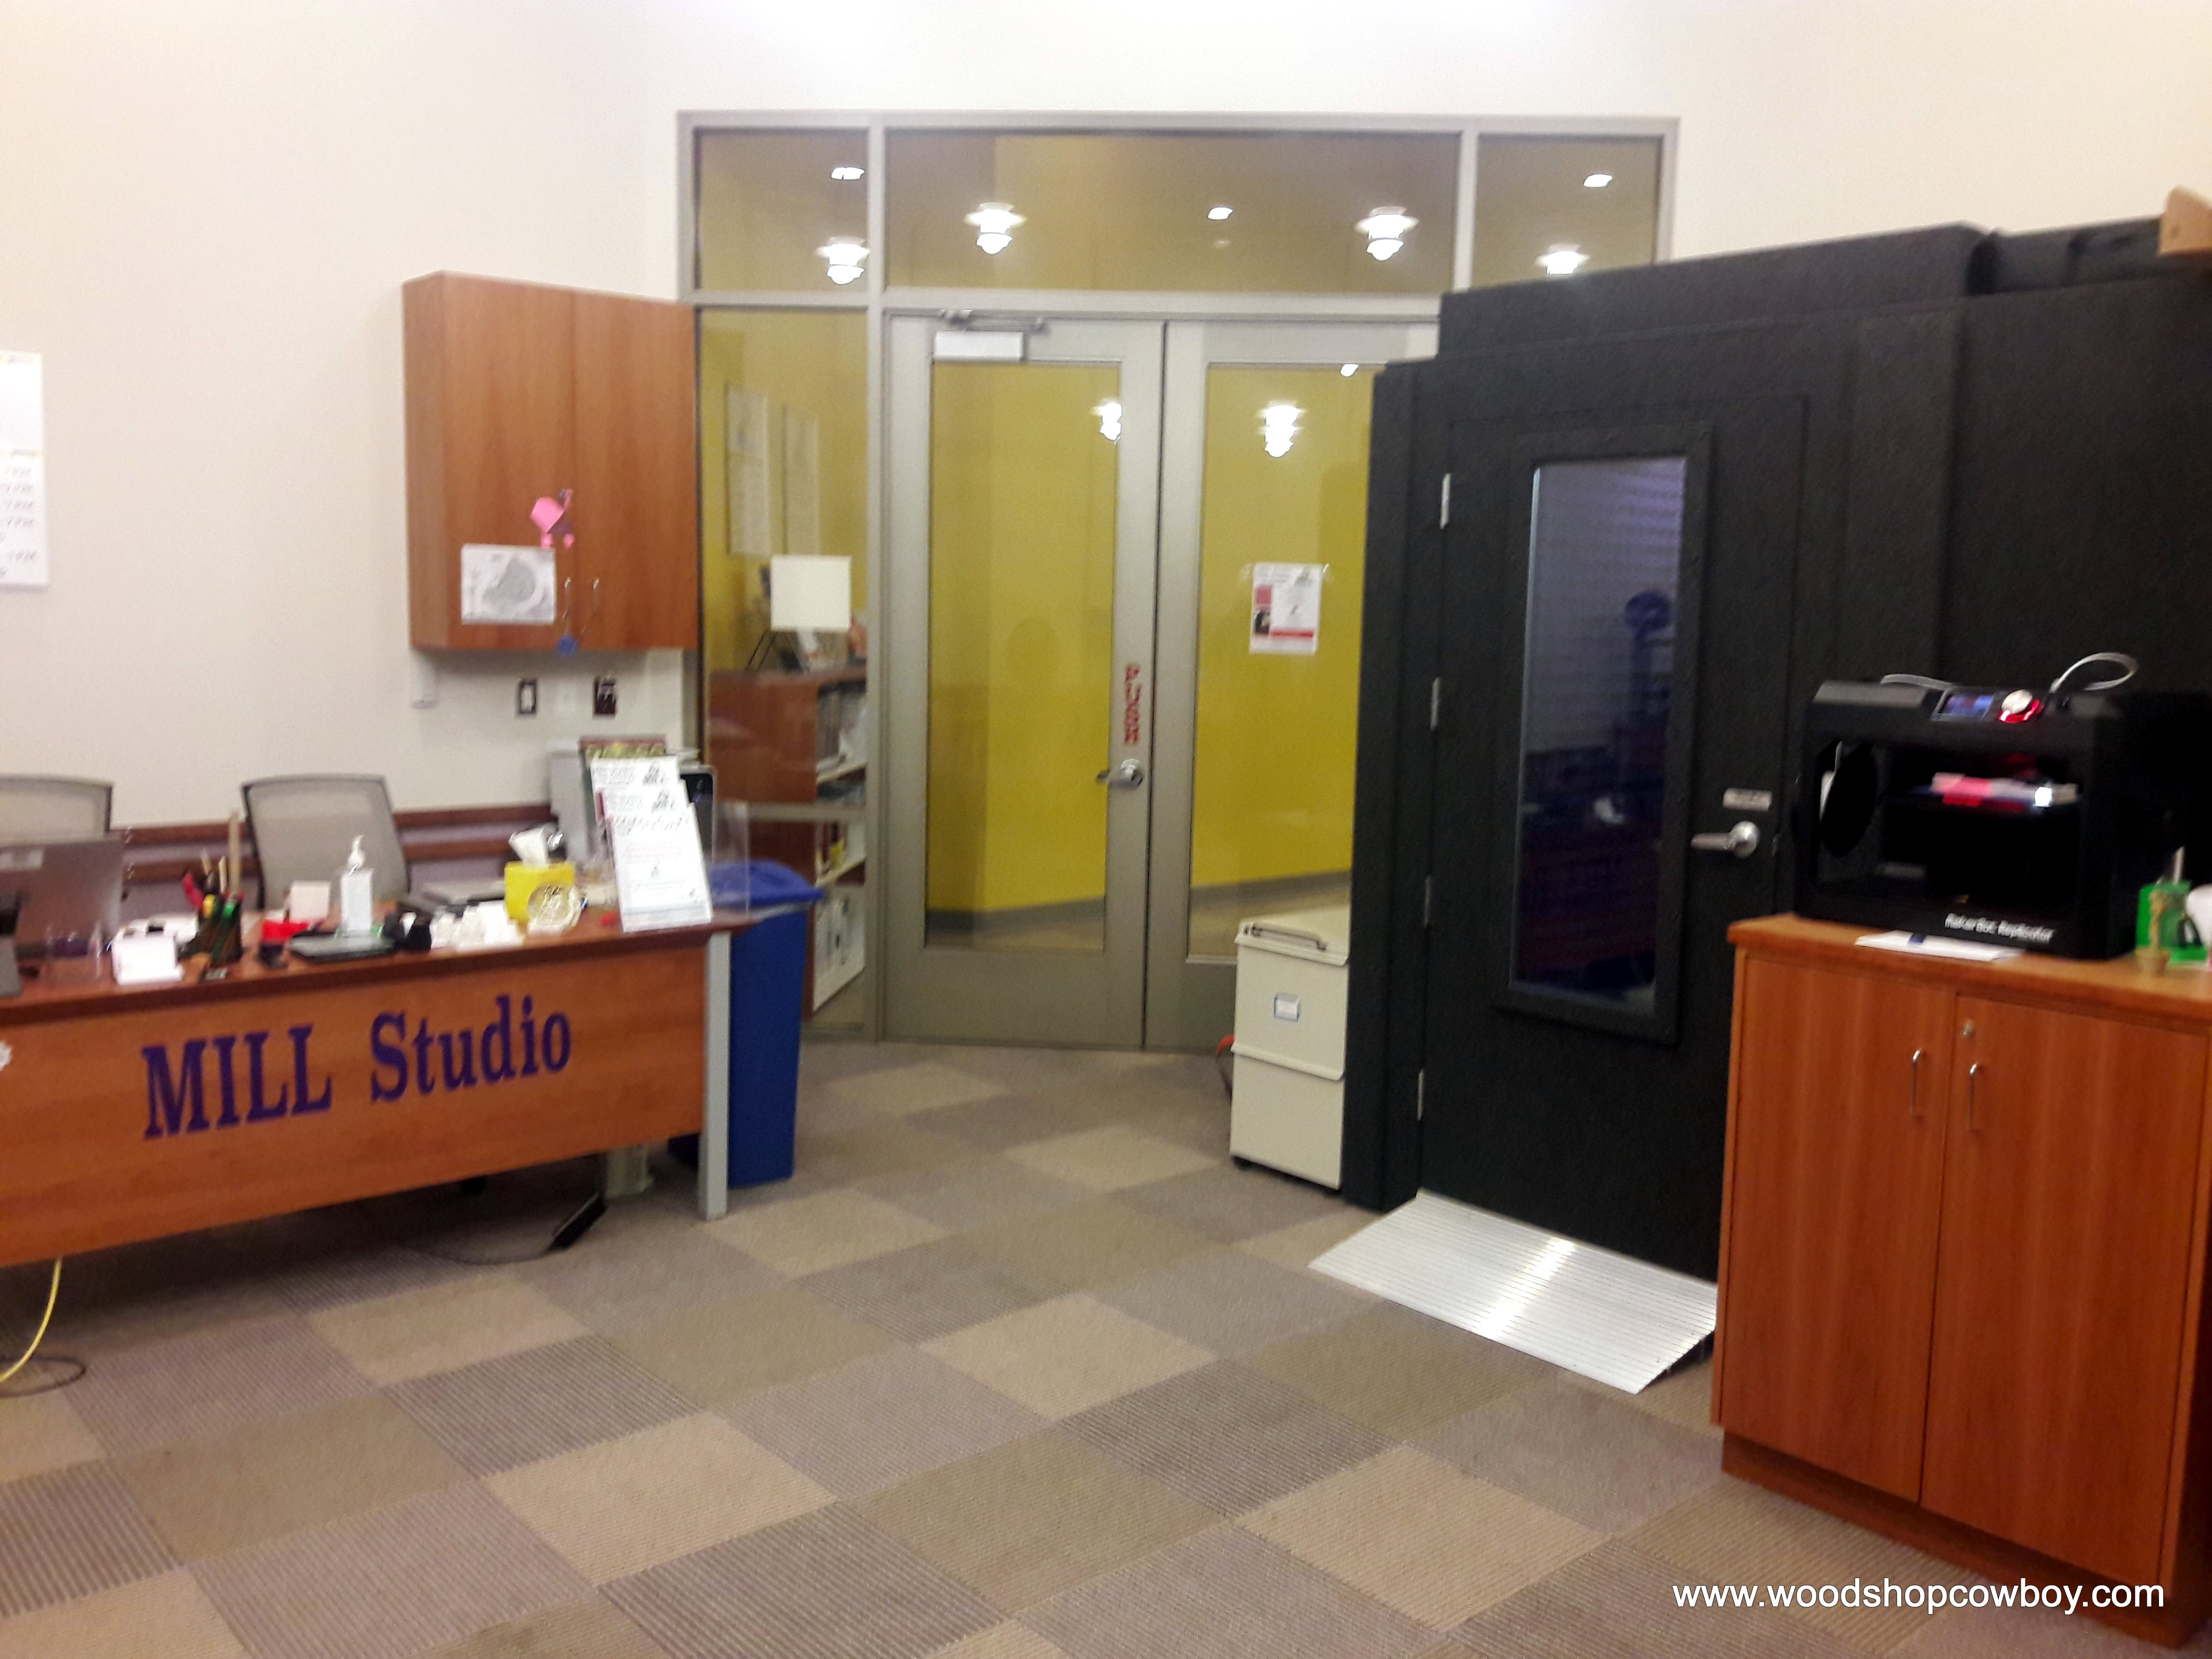 Gum Spring Library >> Makerspace Tour Mill Studio At Gum Springs Library Woodshopcowboy